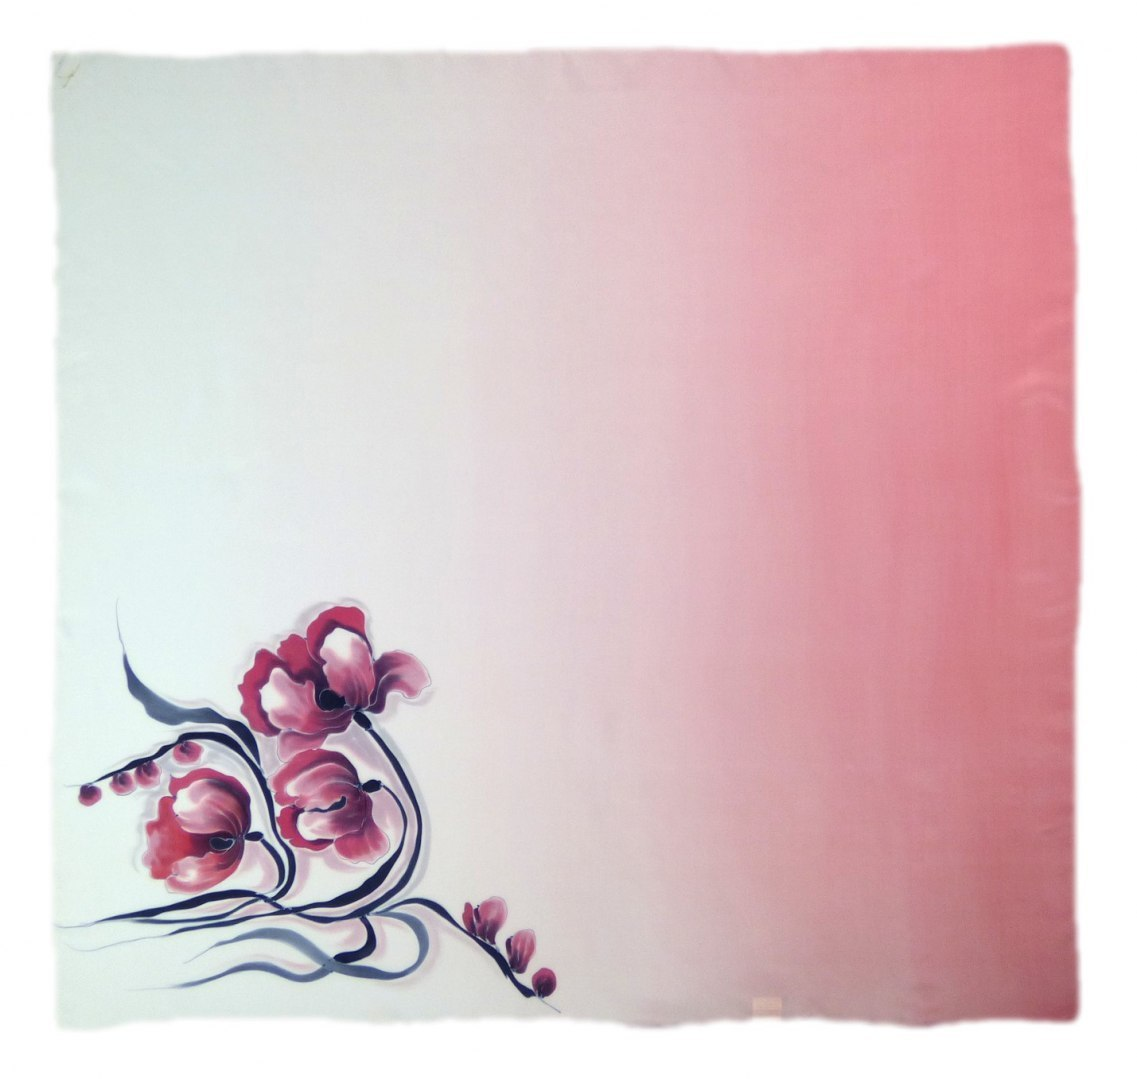 AM-263 Hand-painted silk scarf, 90x90cm